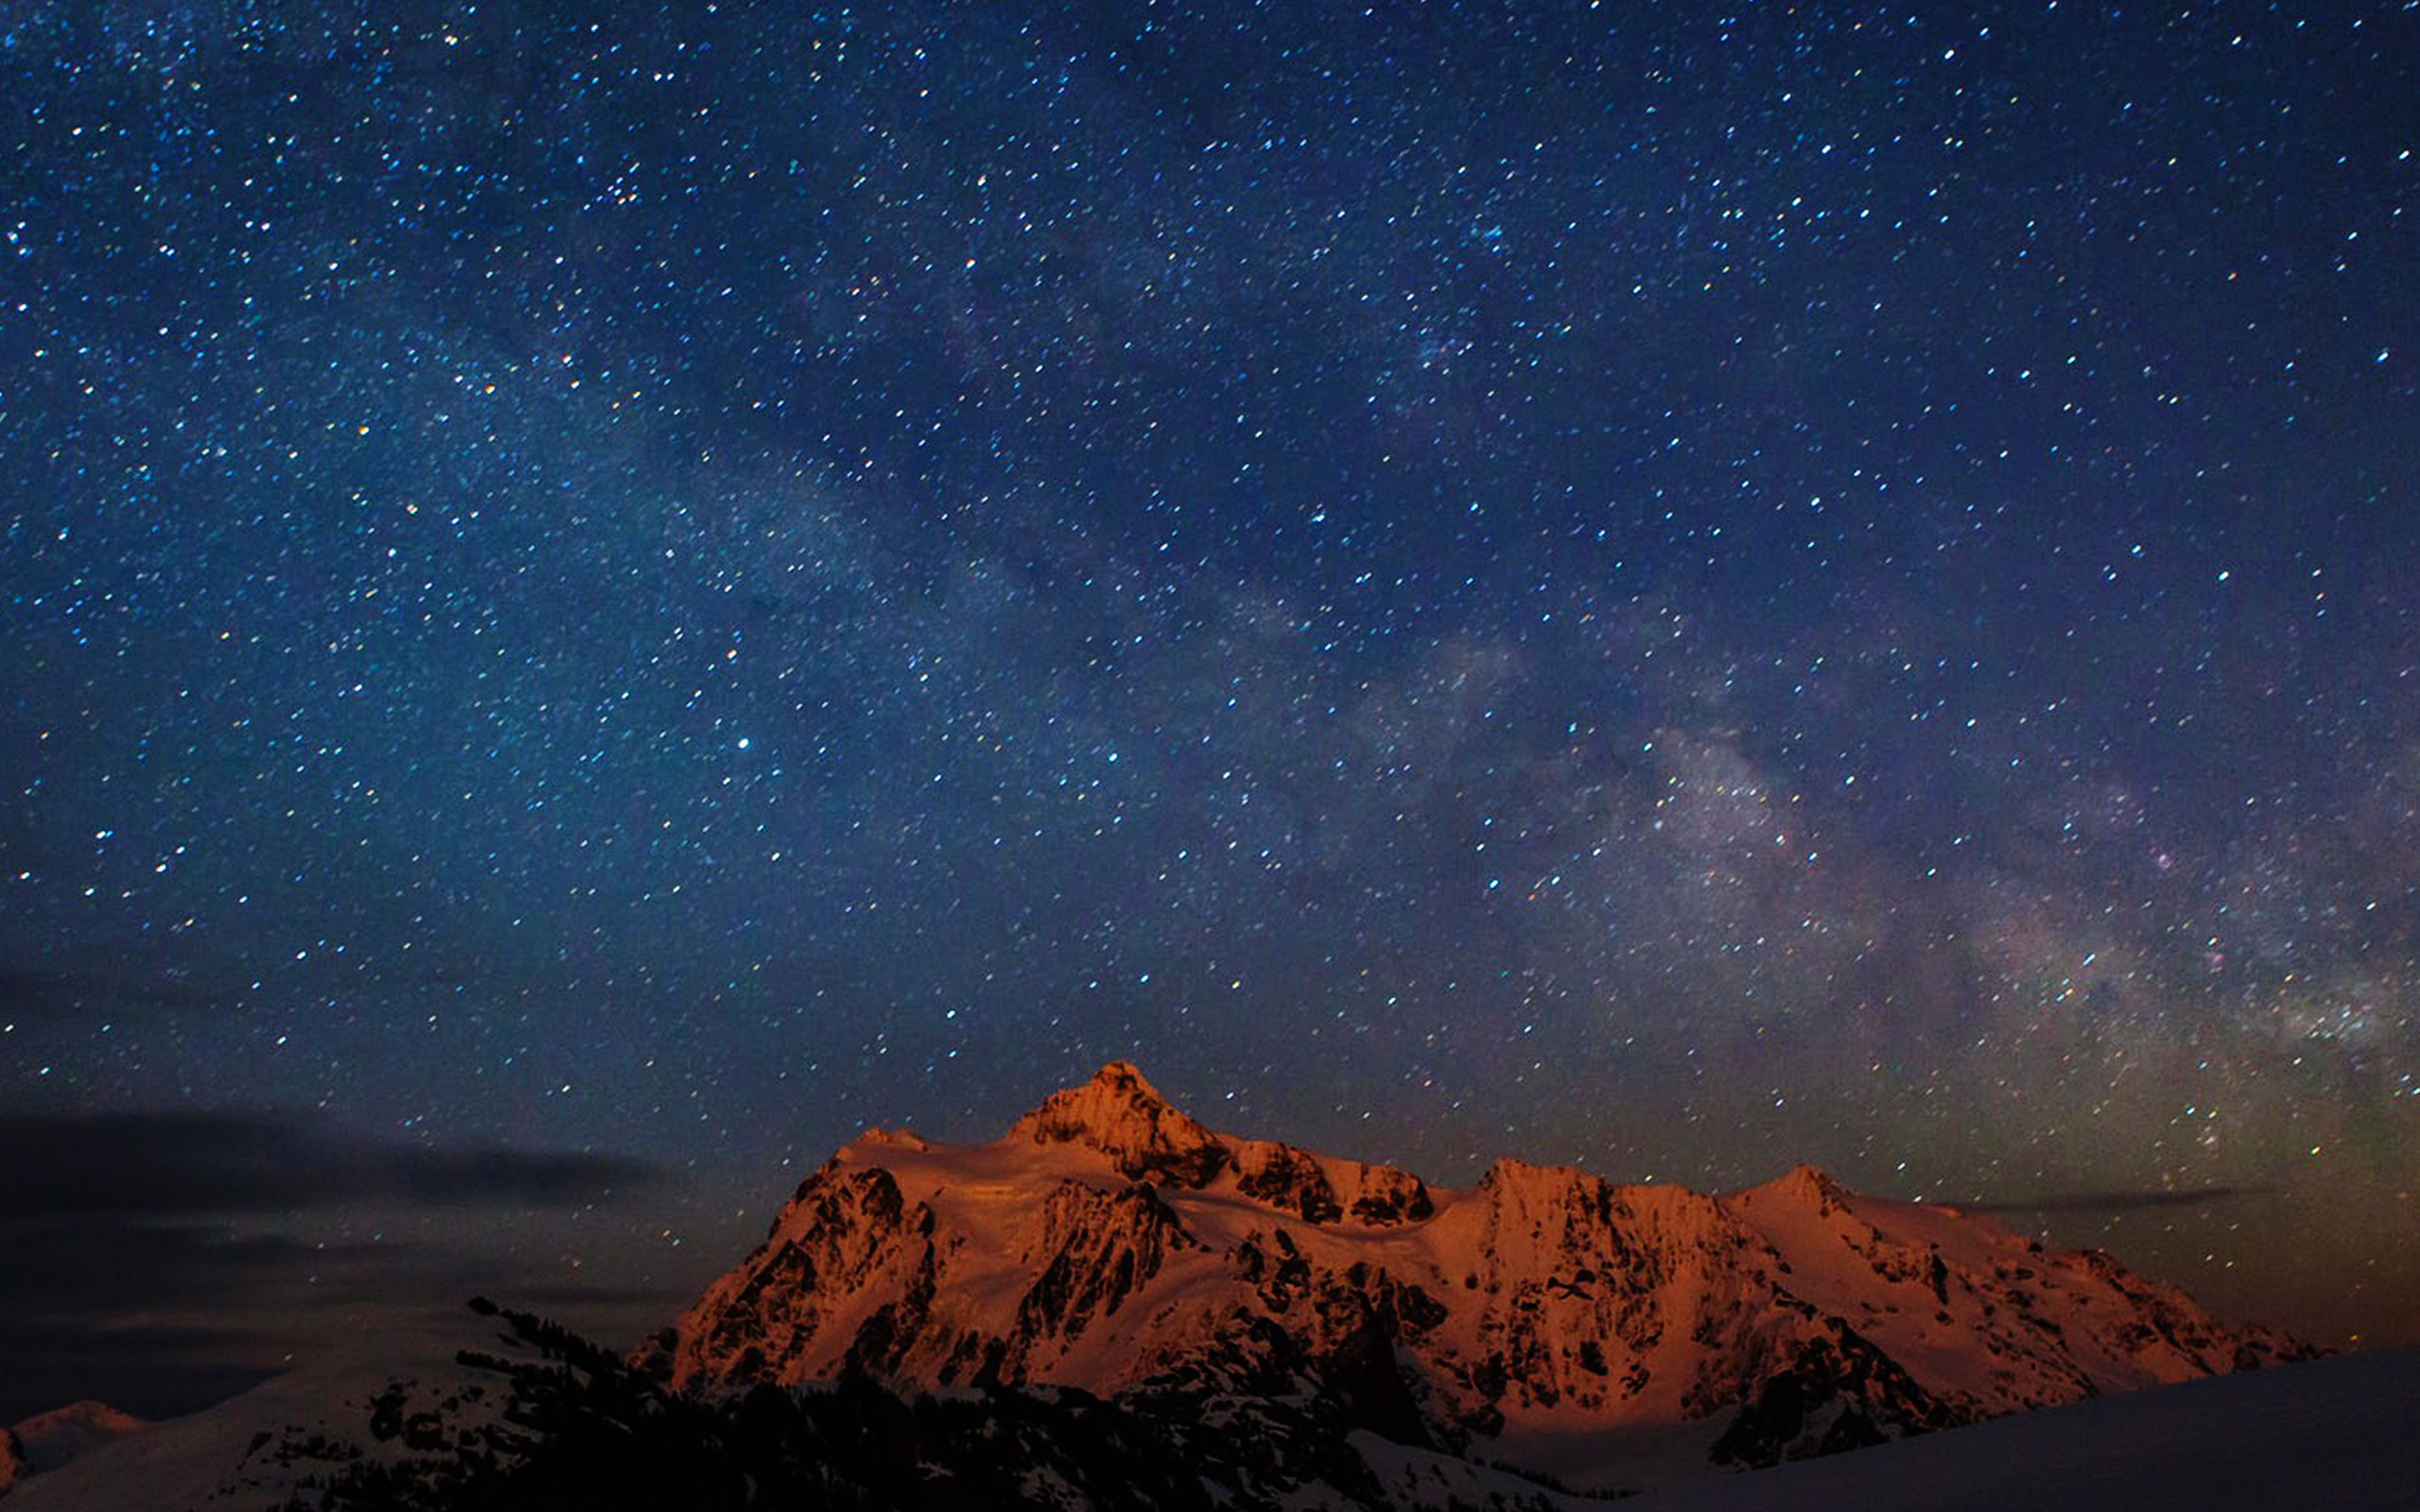 Nf70 starry night sky mountain nature wallpaper - Star night wallpaper ...